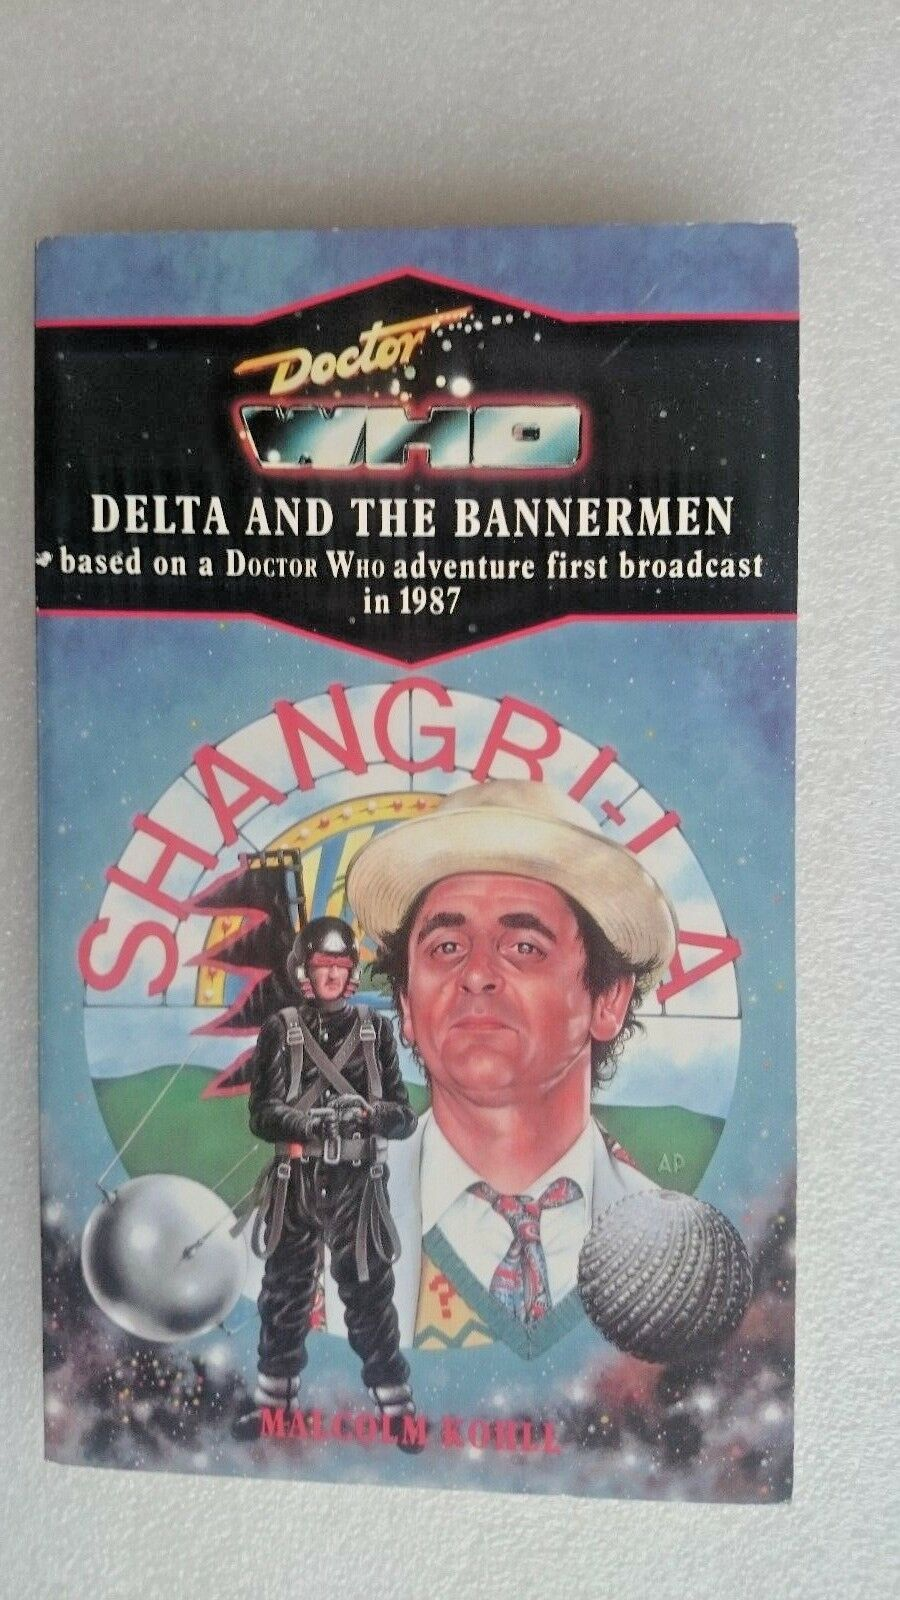 Doctor Who-Delta and the Bannerman by Malcolm Kohll (Paperback, 1991)